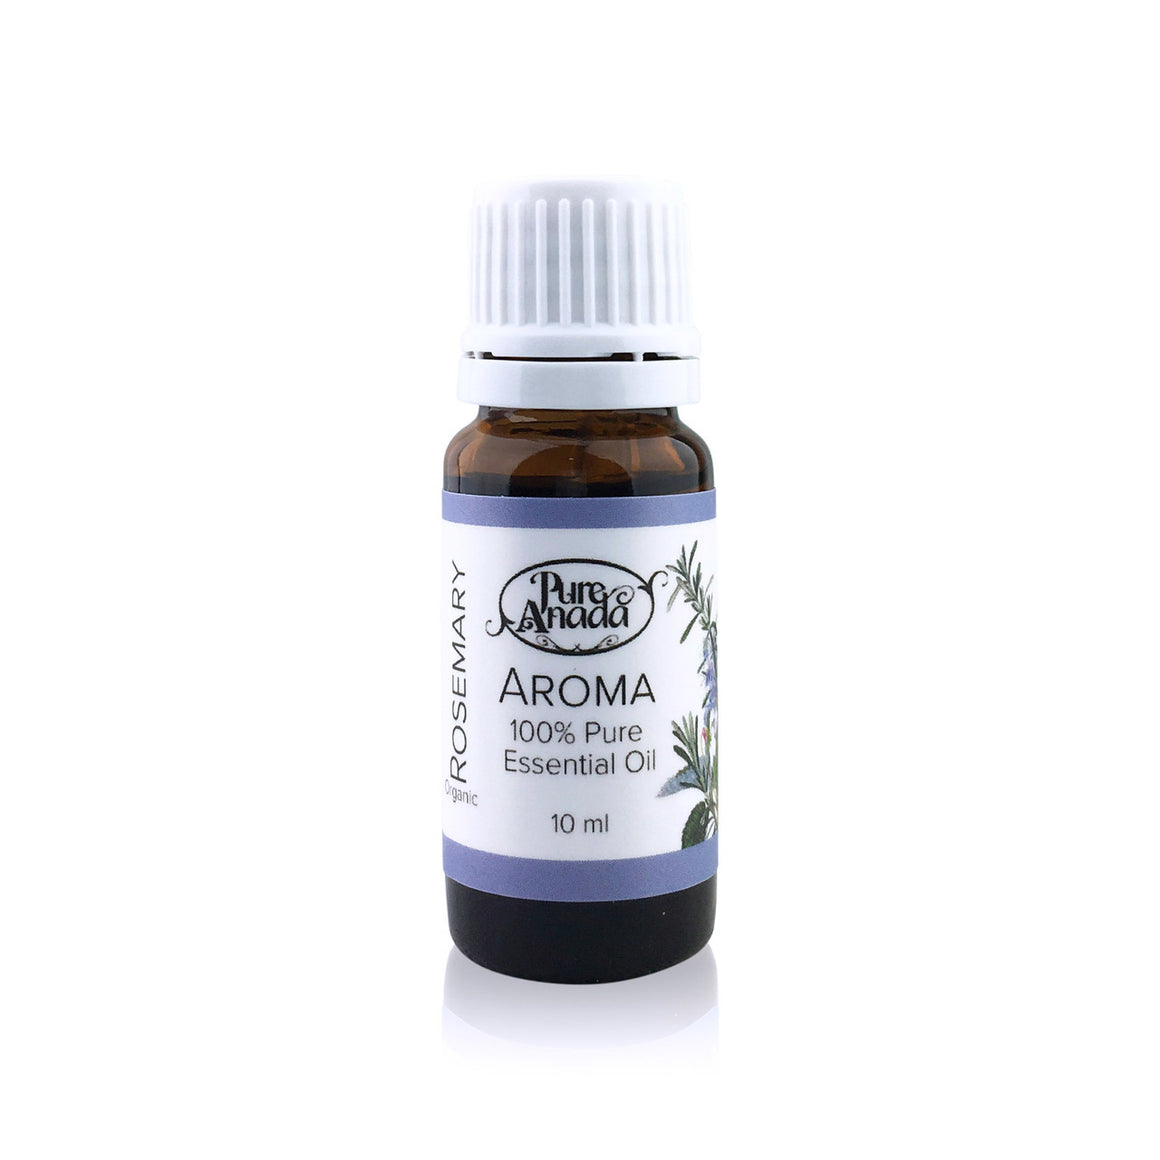 Rosemary Aroma (Organic) - Essential Oil 10ml